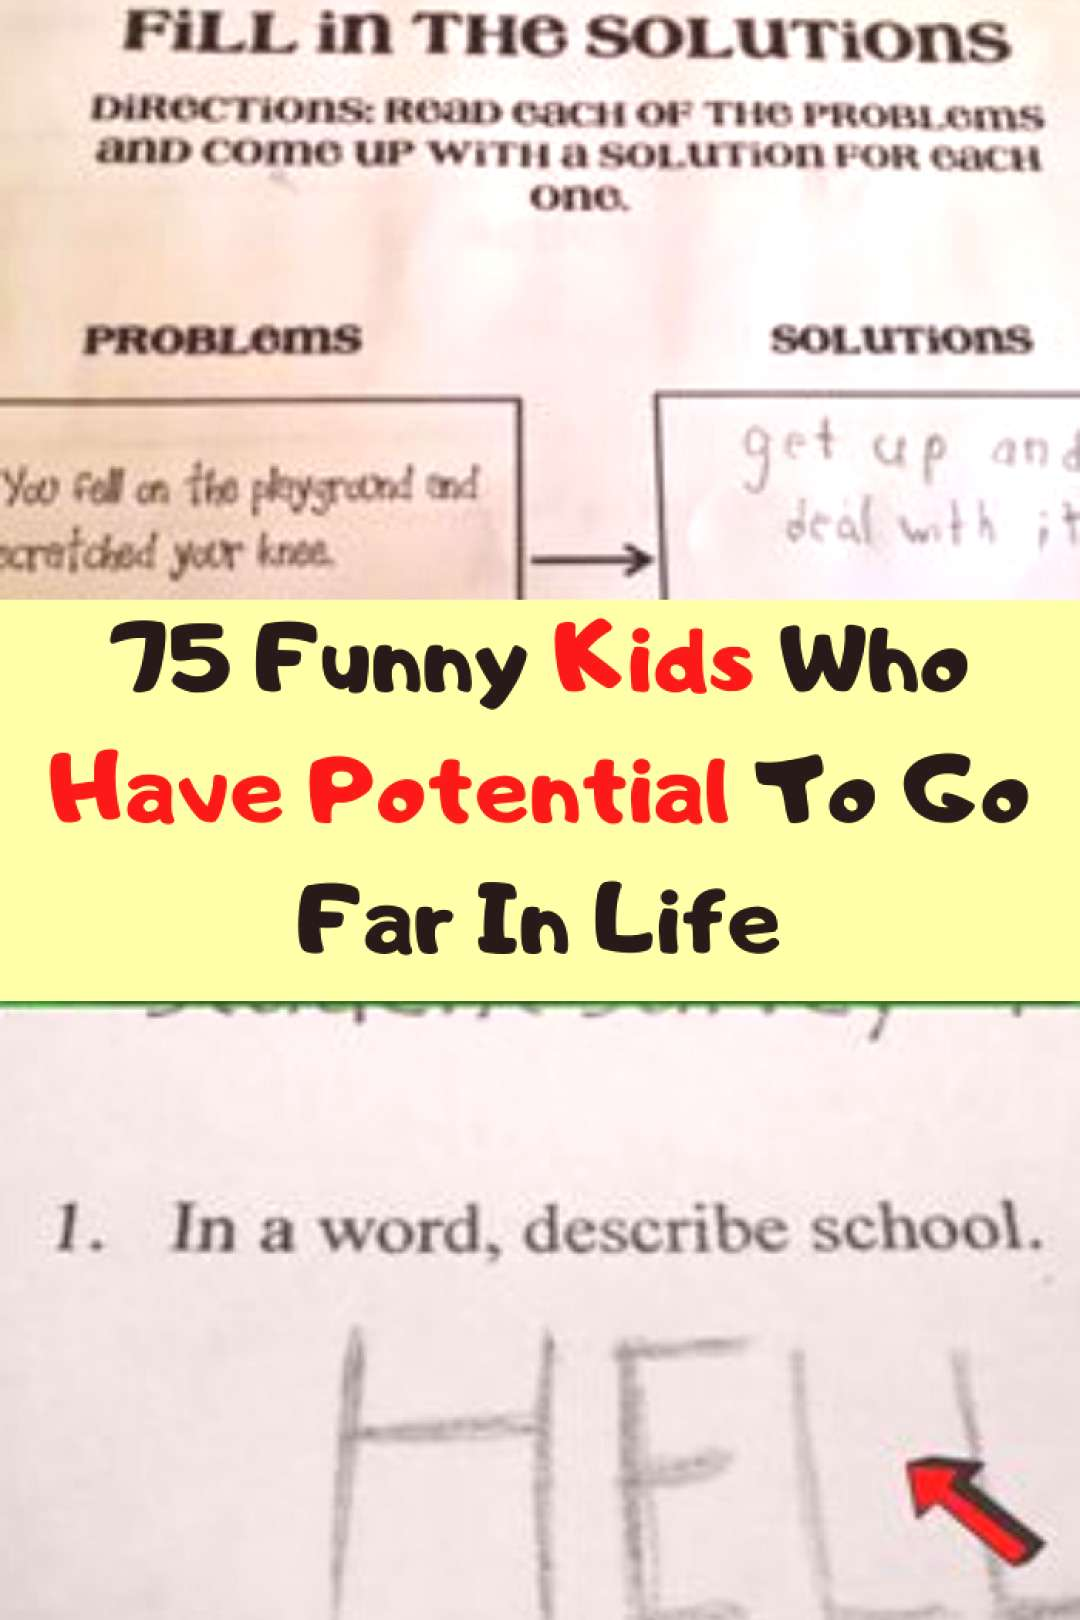 75 Funny Kids Who Have Potential To Go Far In Life